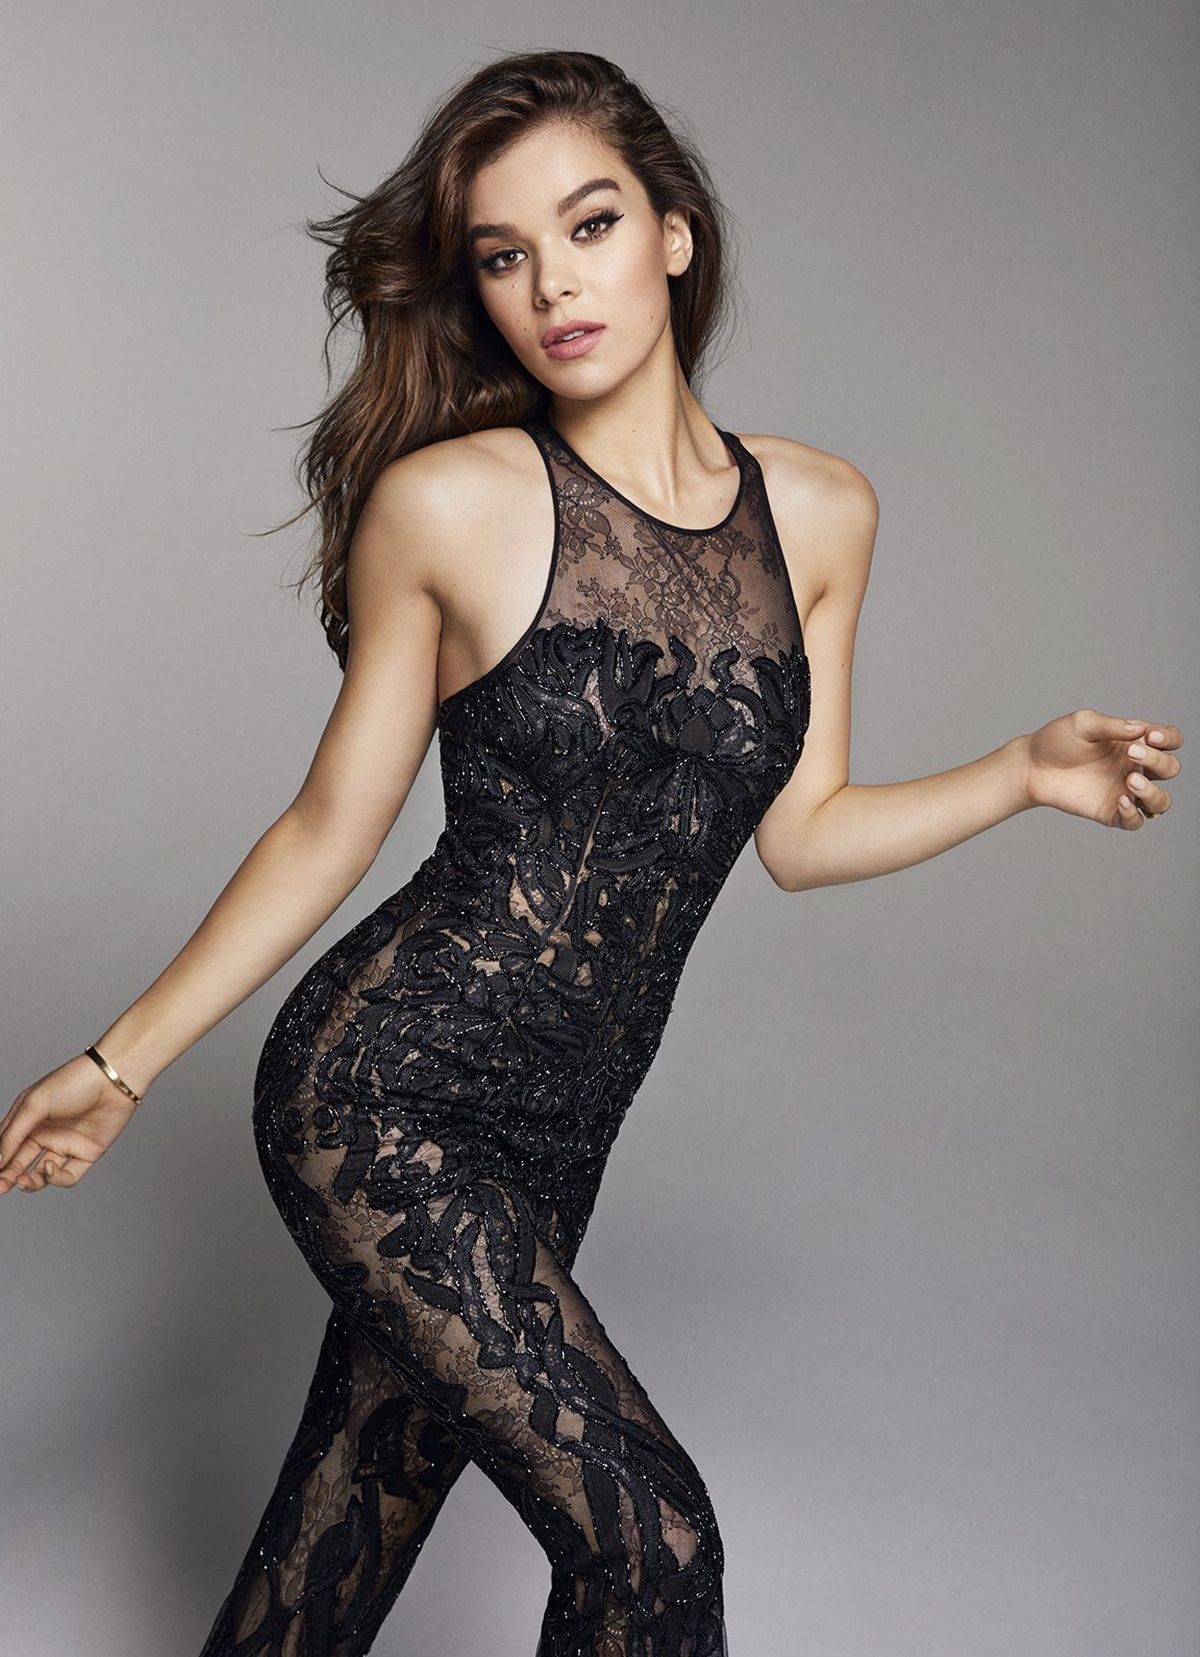 Hailee Steinfeld nude (71 photos), Pussy, Fappening, Twitter, butt 2018